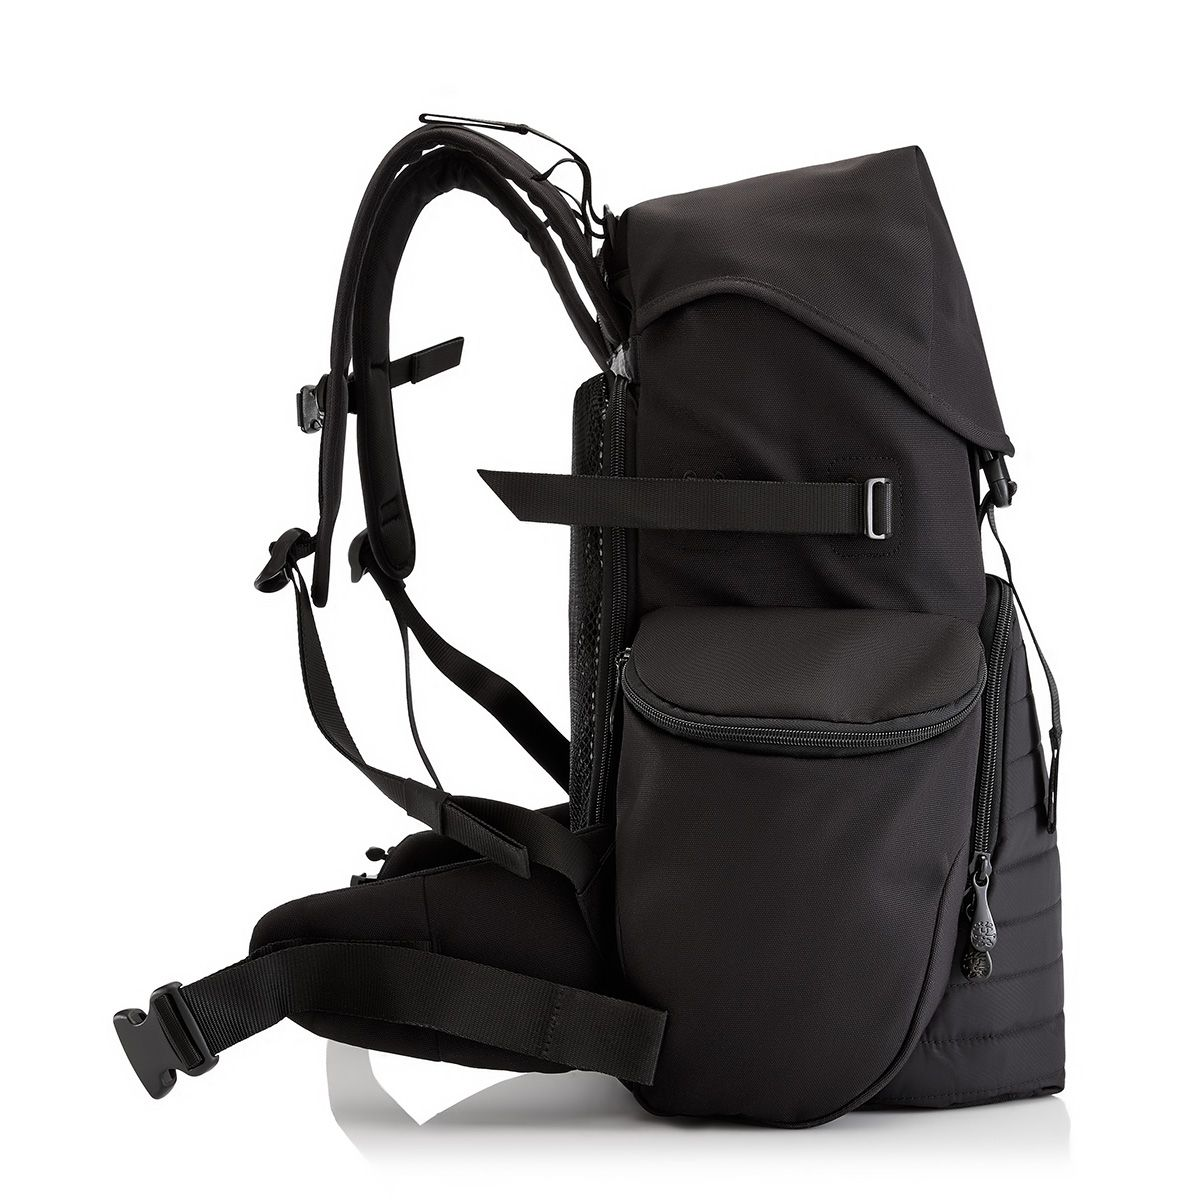 Karachi Outpost (M) padded photography backpack in Black